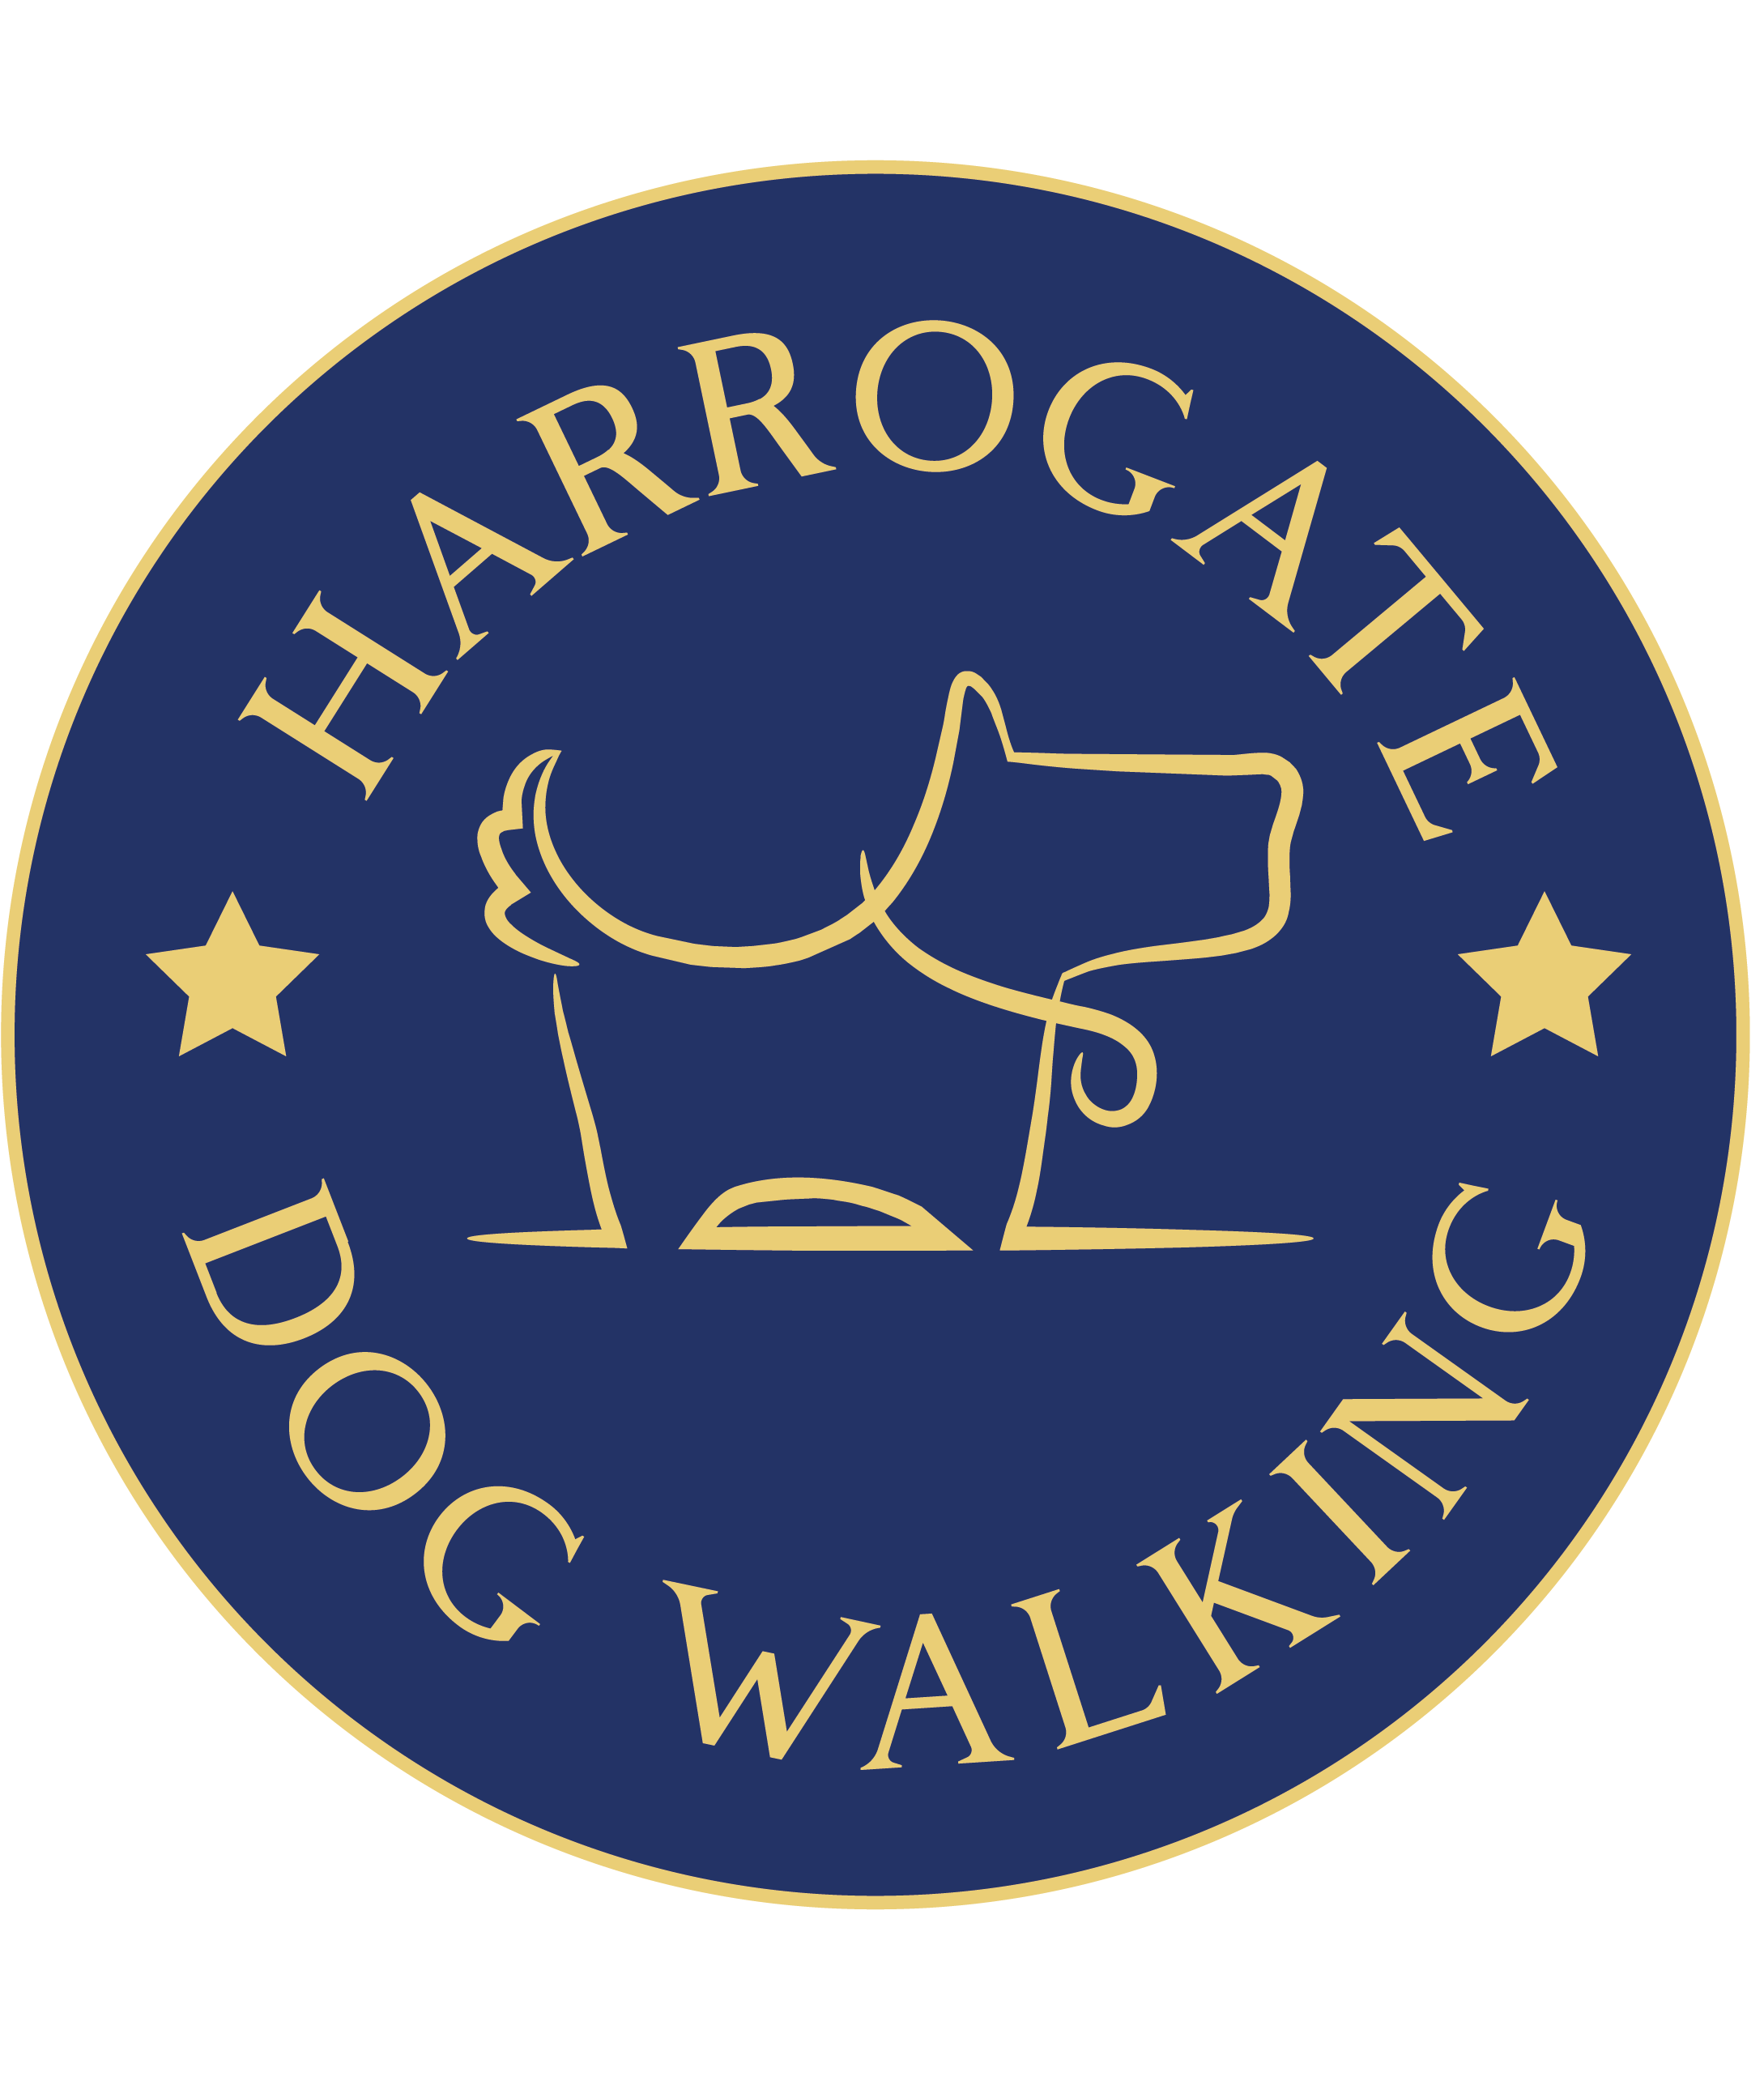 Harrogate Dog Walking